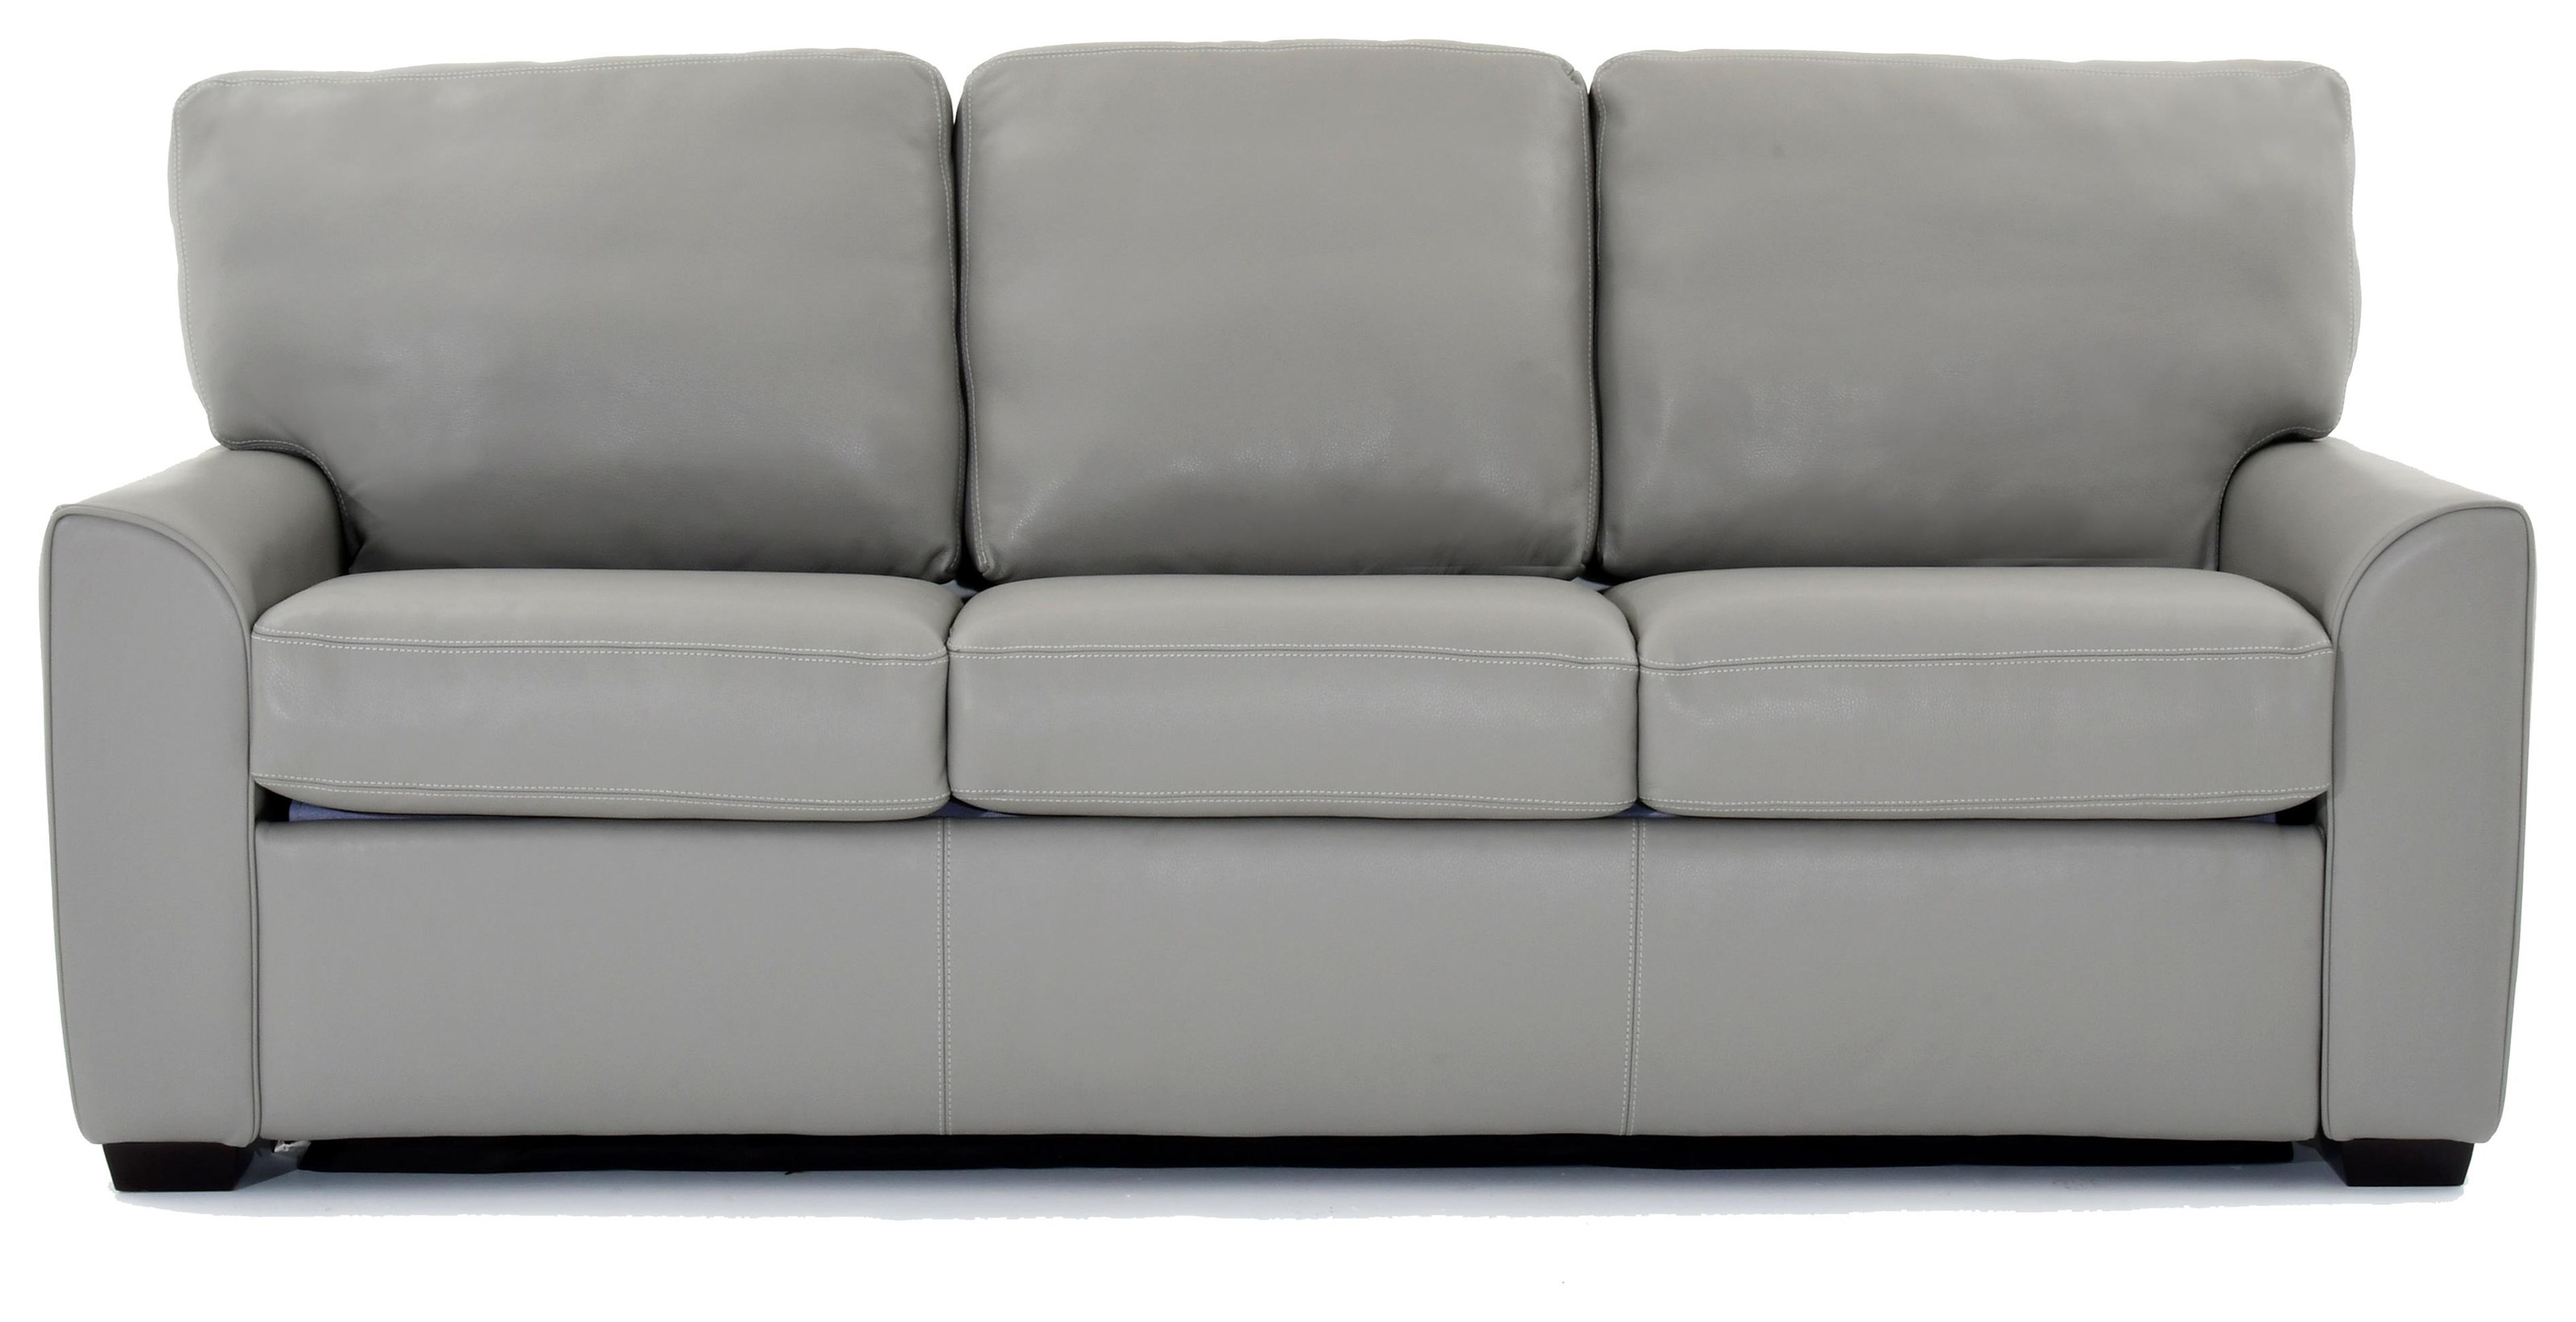 Klein Queen Size Comfort Sleeper Sofa by American Leather at Baer\'s  Furniture